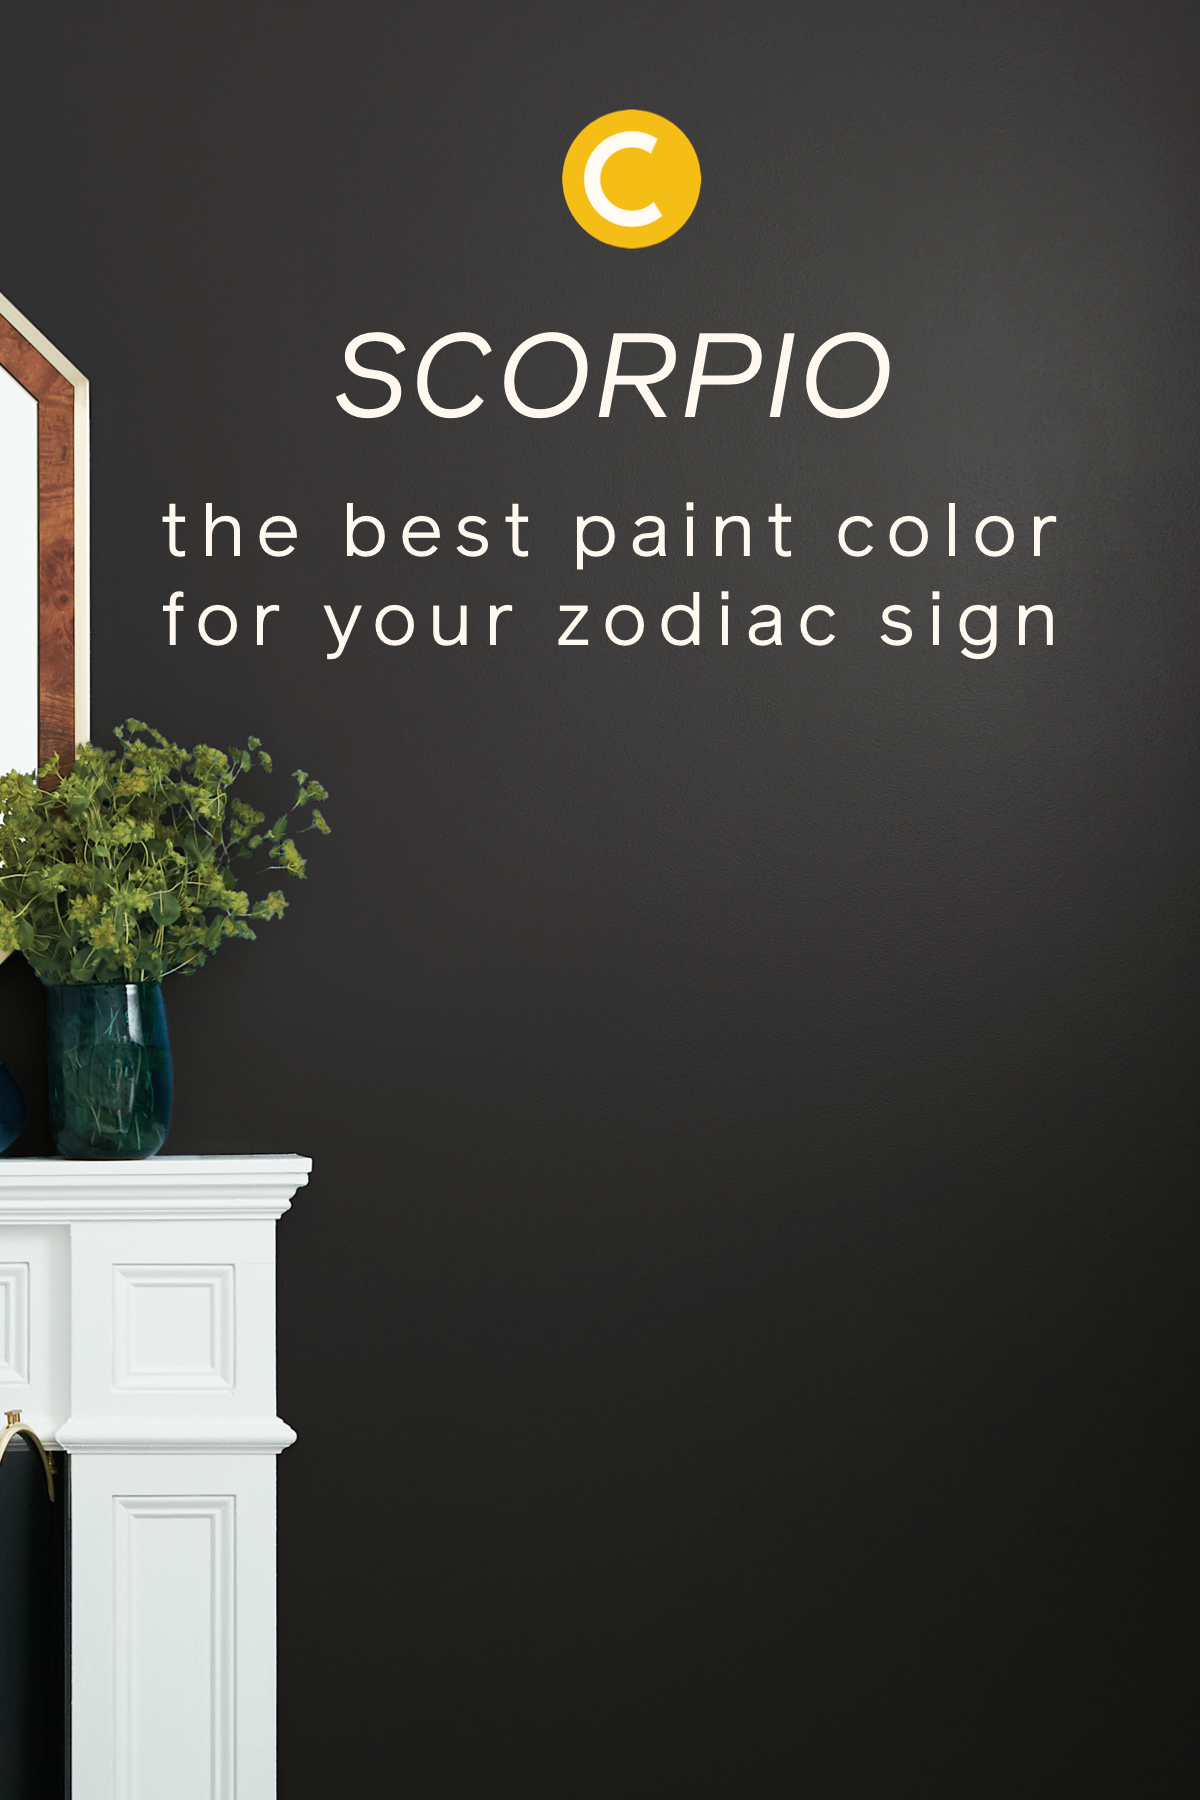 The Best Paint Color For Your Zodiac Sign Zodiac Signs Colors